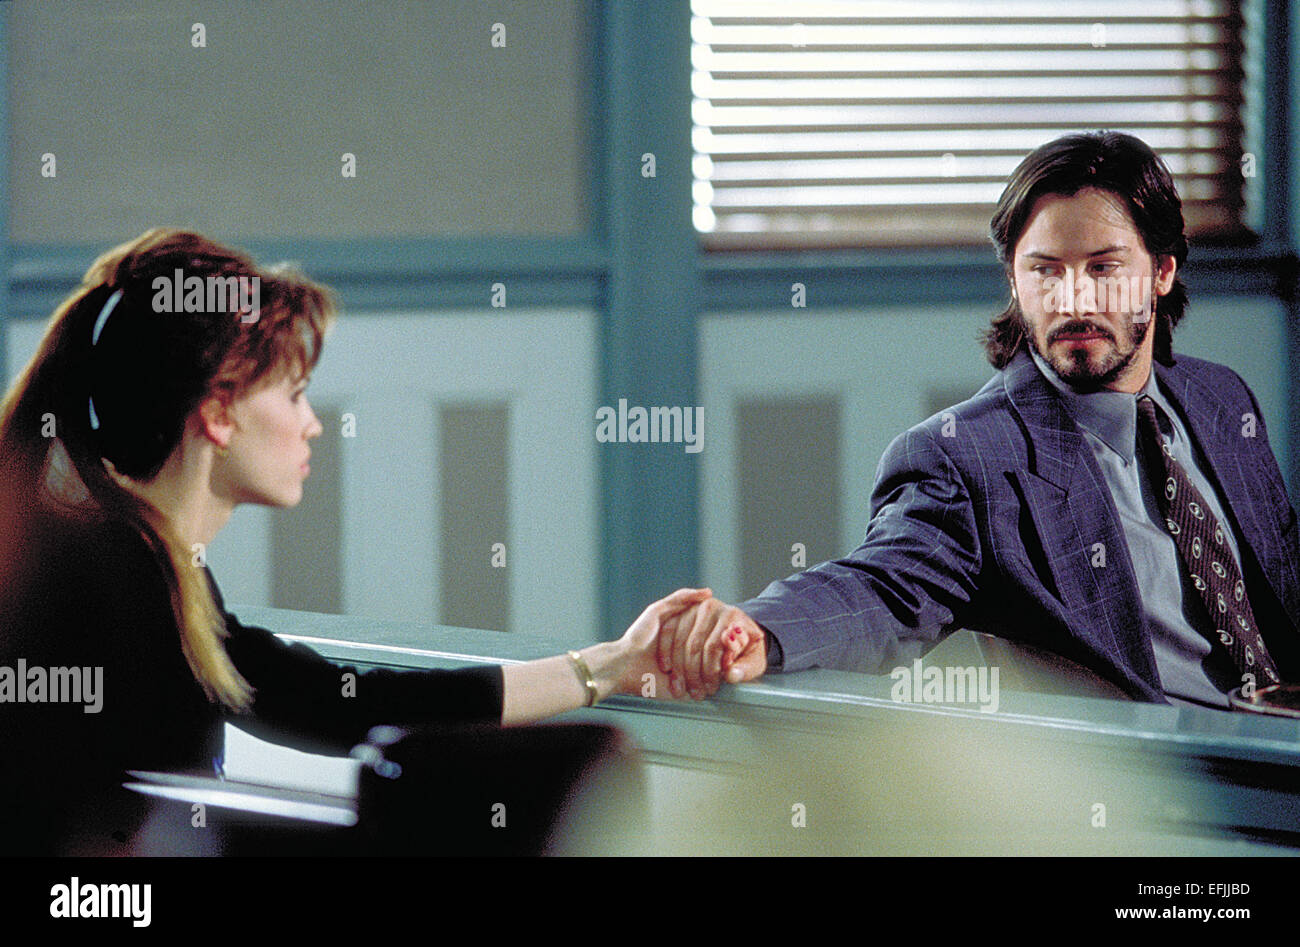 HILARY SWANK & KEANU REEVES THE GIFT (2000 Stock Photo, Royalty ...